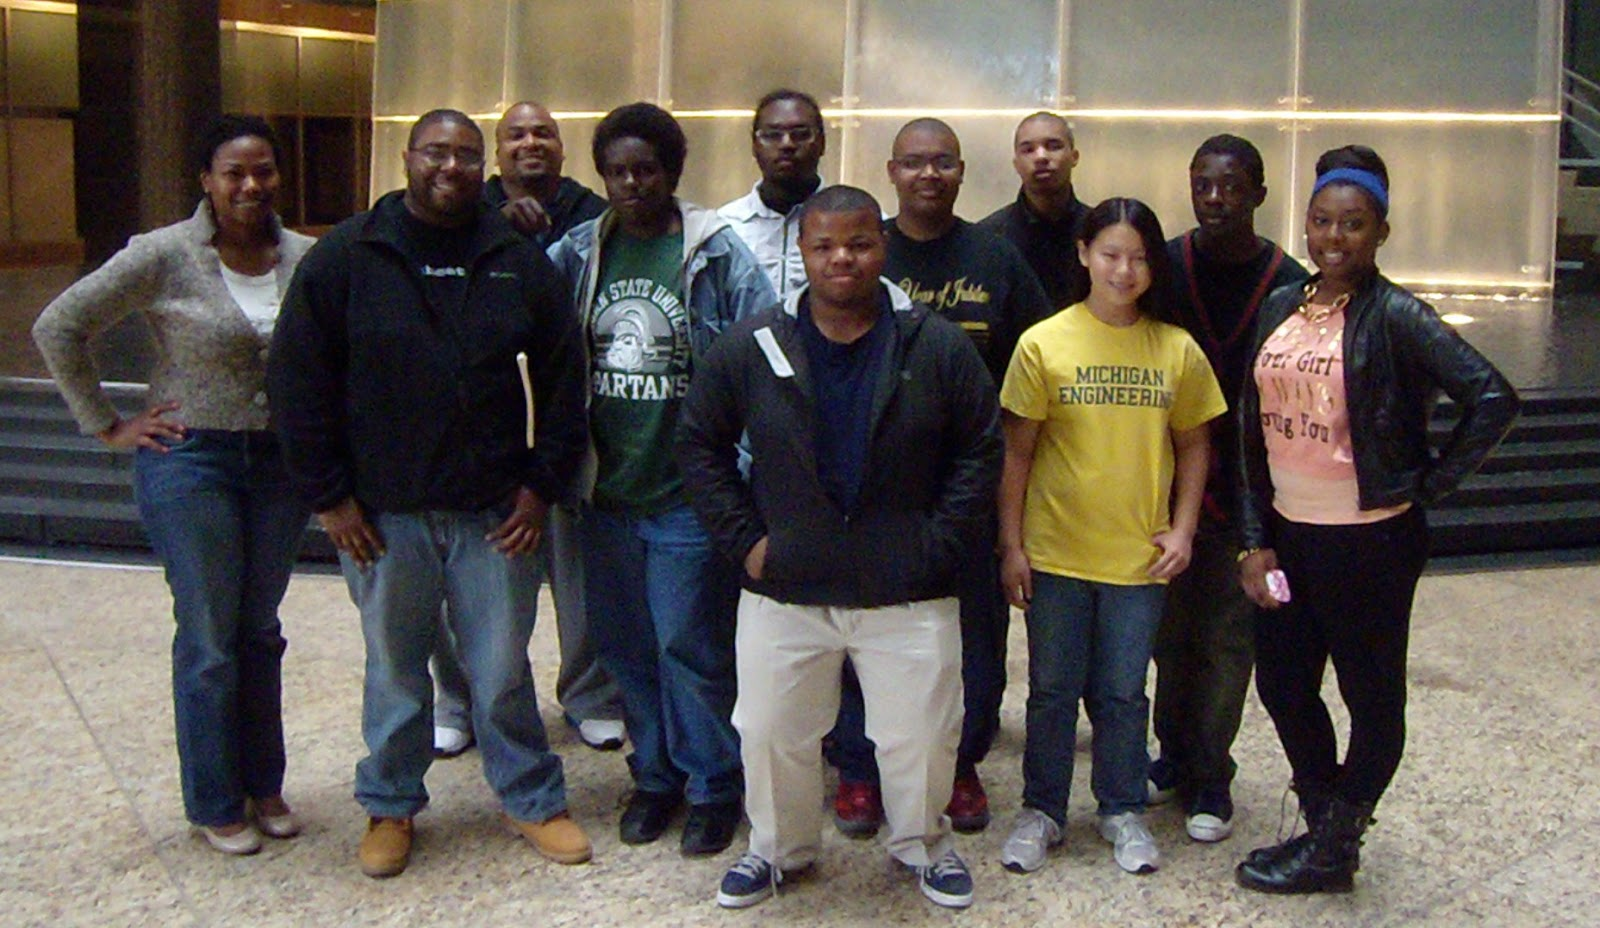 1st row (L-R): Tonji Zimmerman (Coordinator/Trainer), Richard Session (Trainer), Cortez Christian, Bradley Wise, Elizabeth Ho, Desiree Taylor 2nd row (L-R): Anthony Garrett-Leverett (Coordinator/Trainer), Charles McIntosh II, Thomas Graves, Joseph Sigmon, Cameron Campbell Students not in photo: Cameron Hughes, Howard Smith